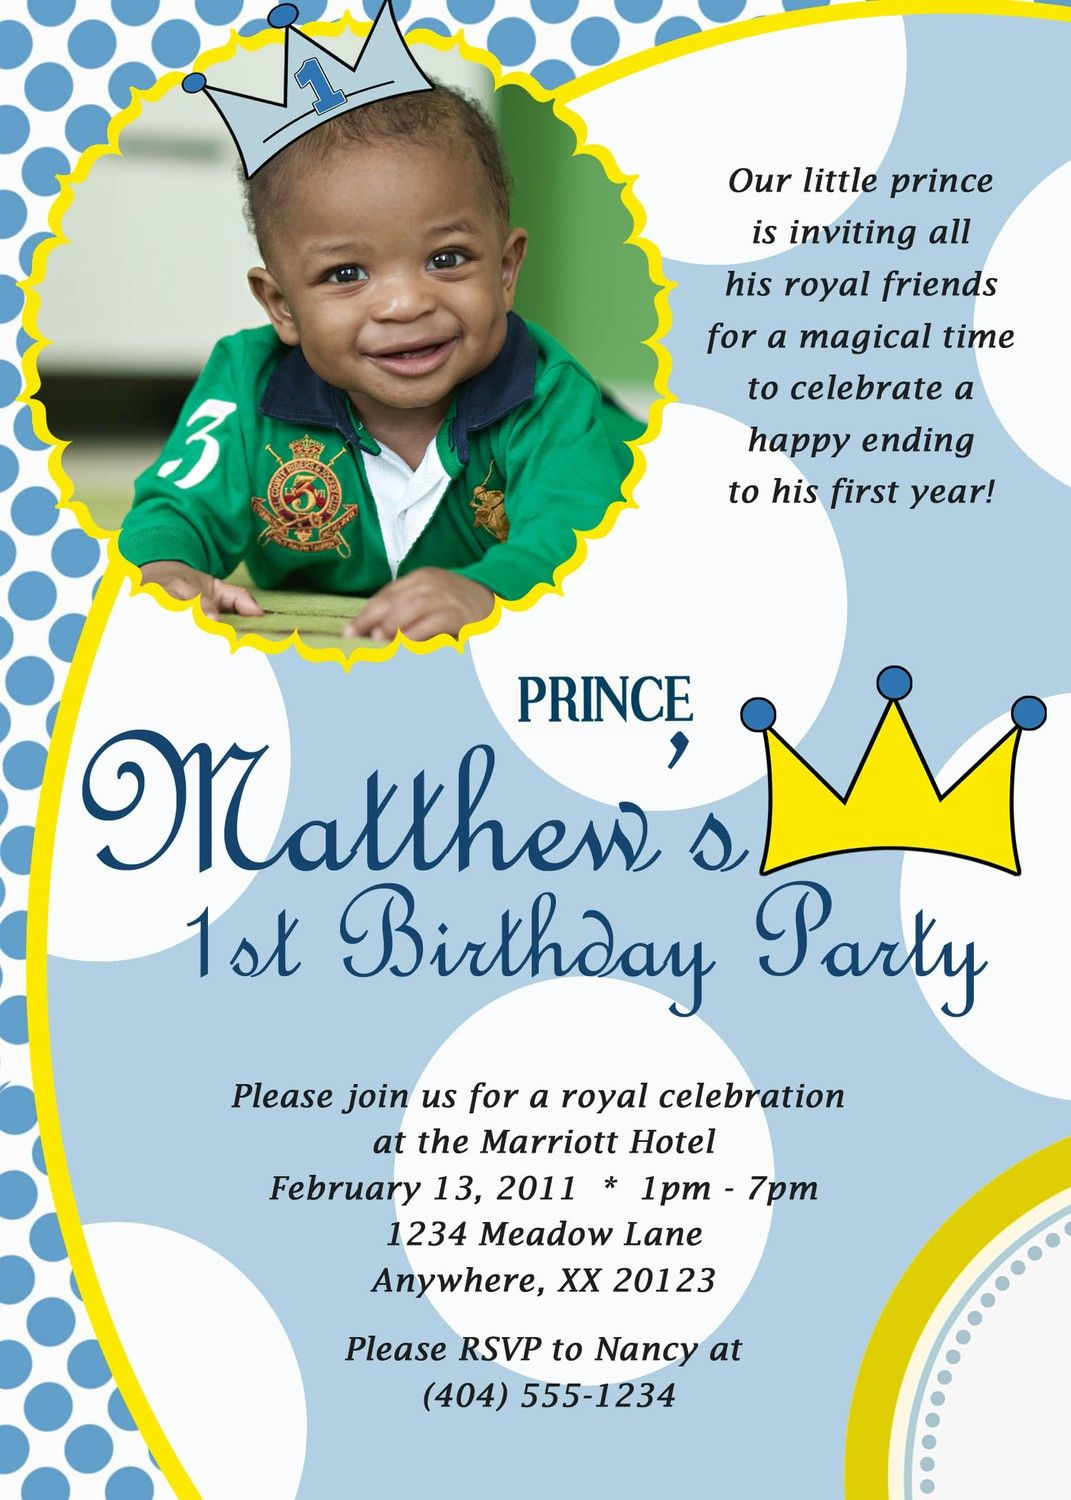 Little Prince Custom Digital Photo Birthday Party Invitation - Royal ...